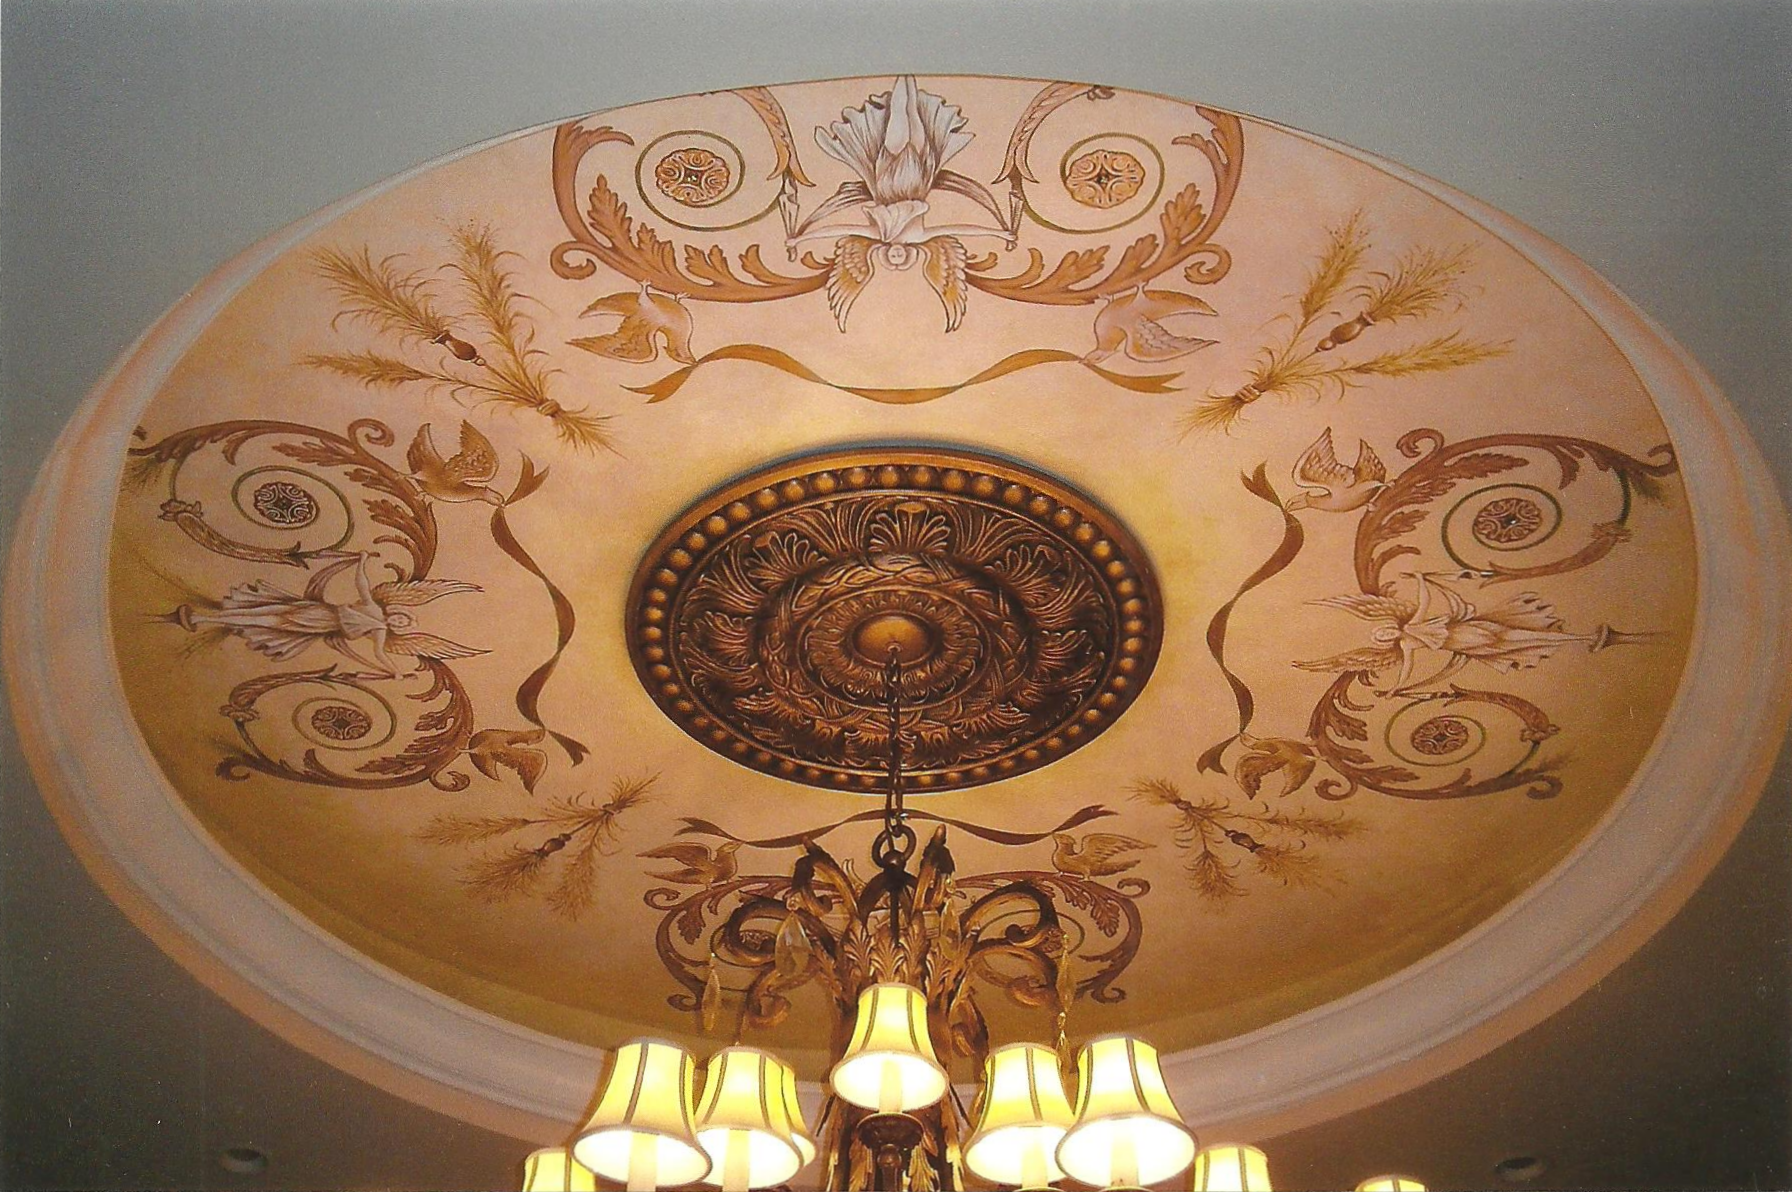 Painted Ceiling in Grande Dunes Residence, Myrtle Beach, South Carolina